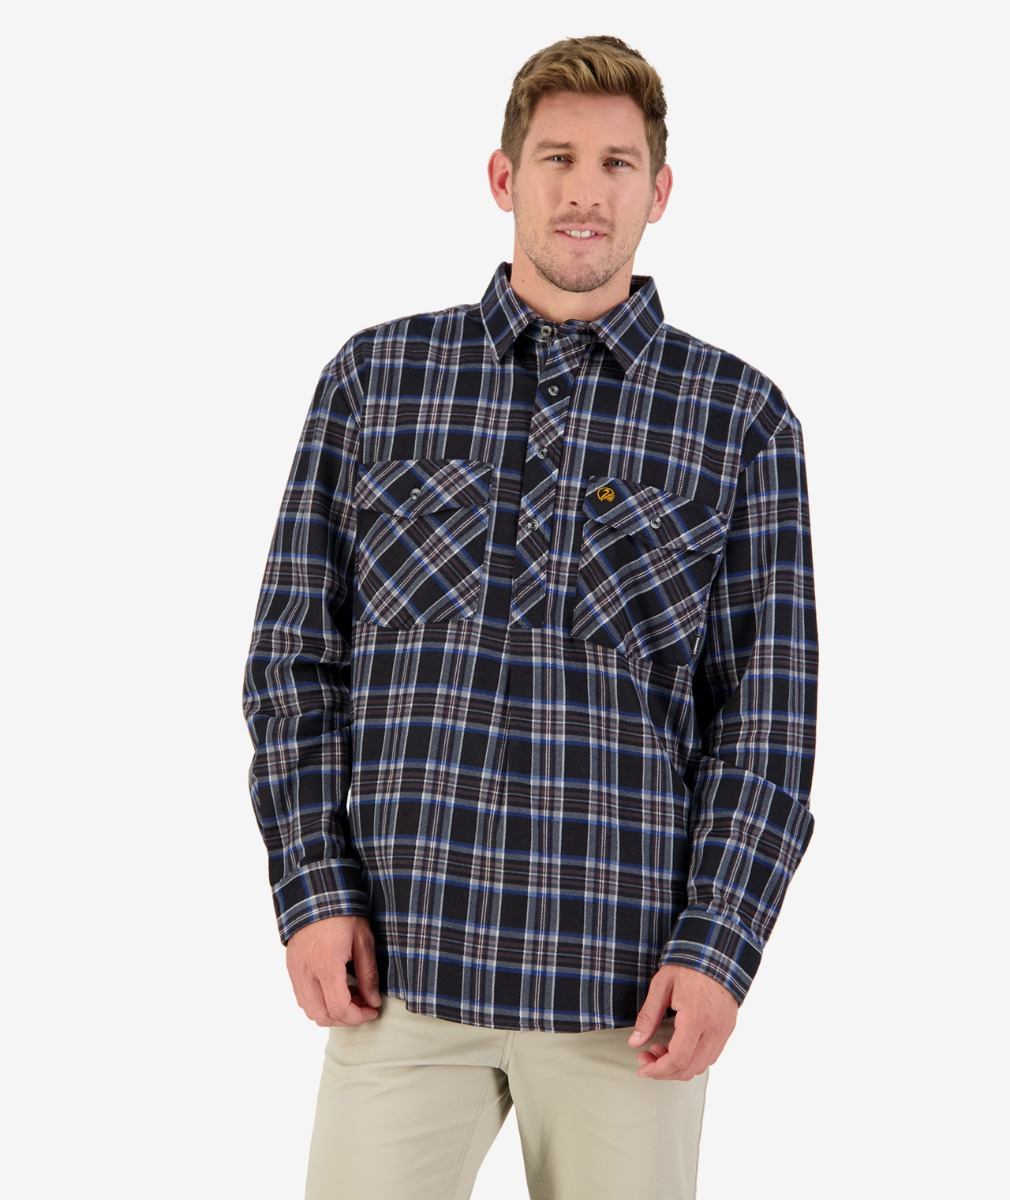 Egmont 1/2 Placket Shirt in Grey/Red